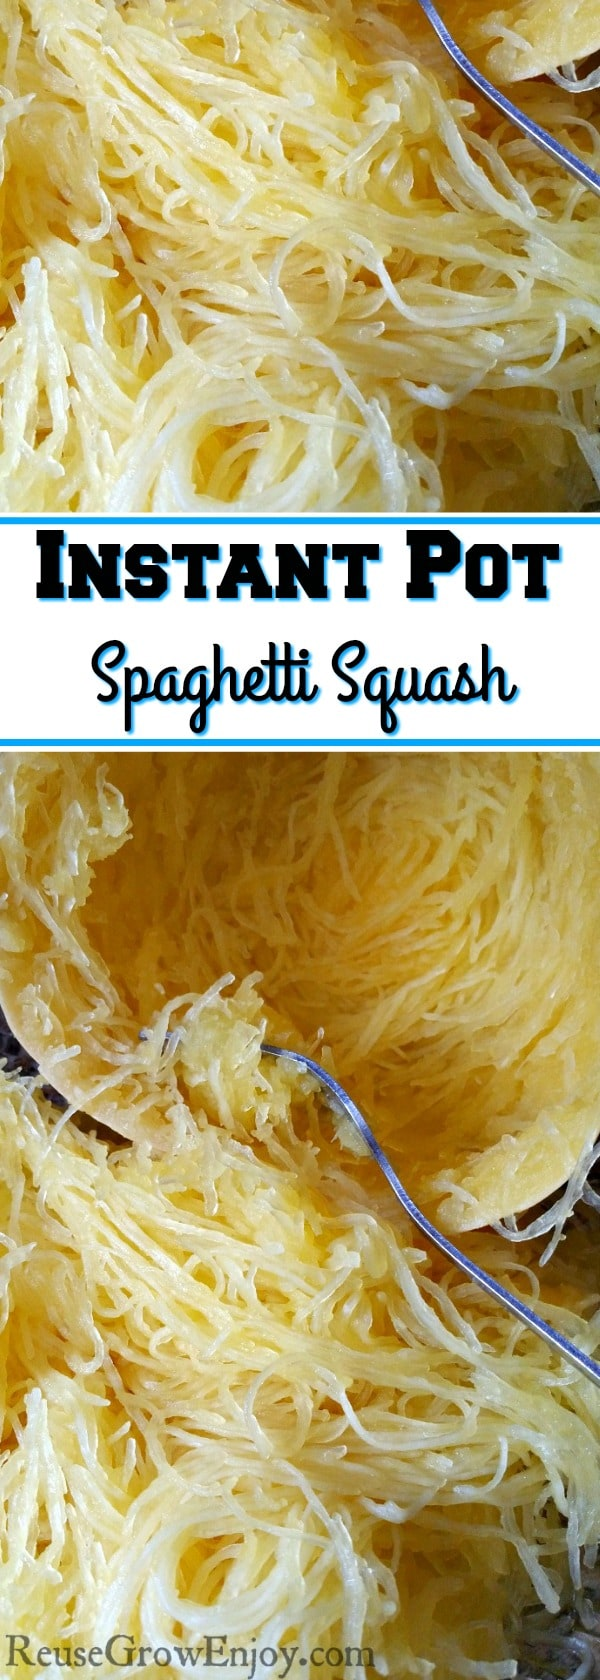 If you like Spaghetti Squash, you have to try this. You can make Instant Pot Spaghetti Squash in about 10 minutes!